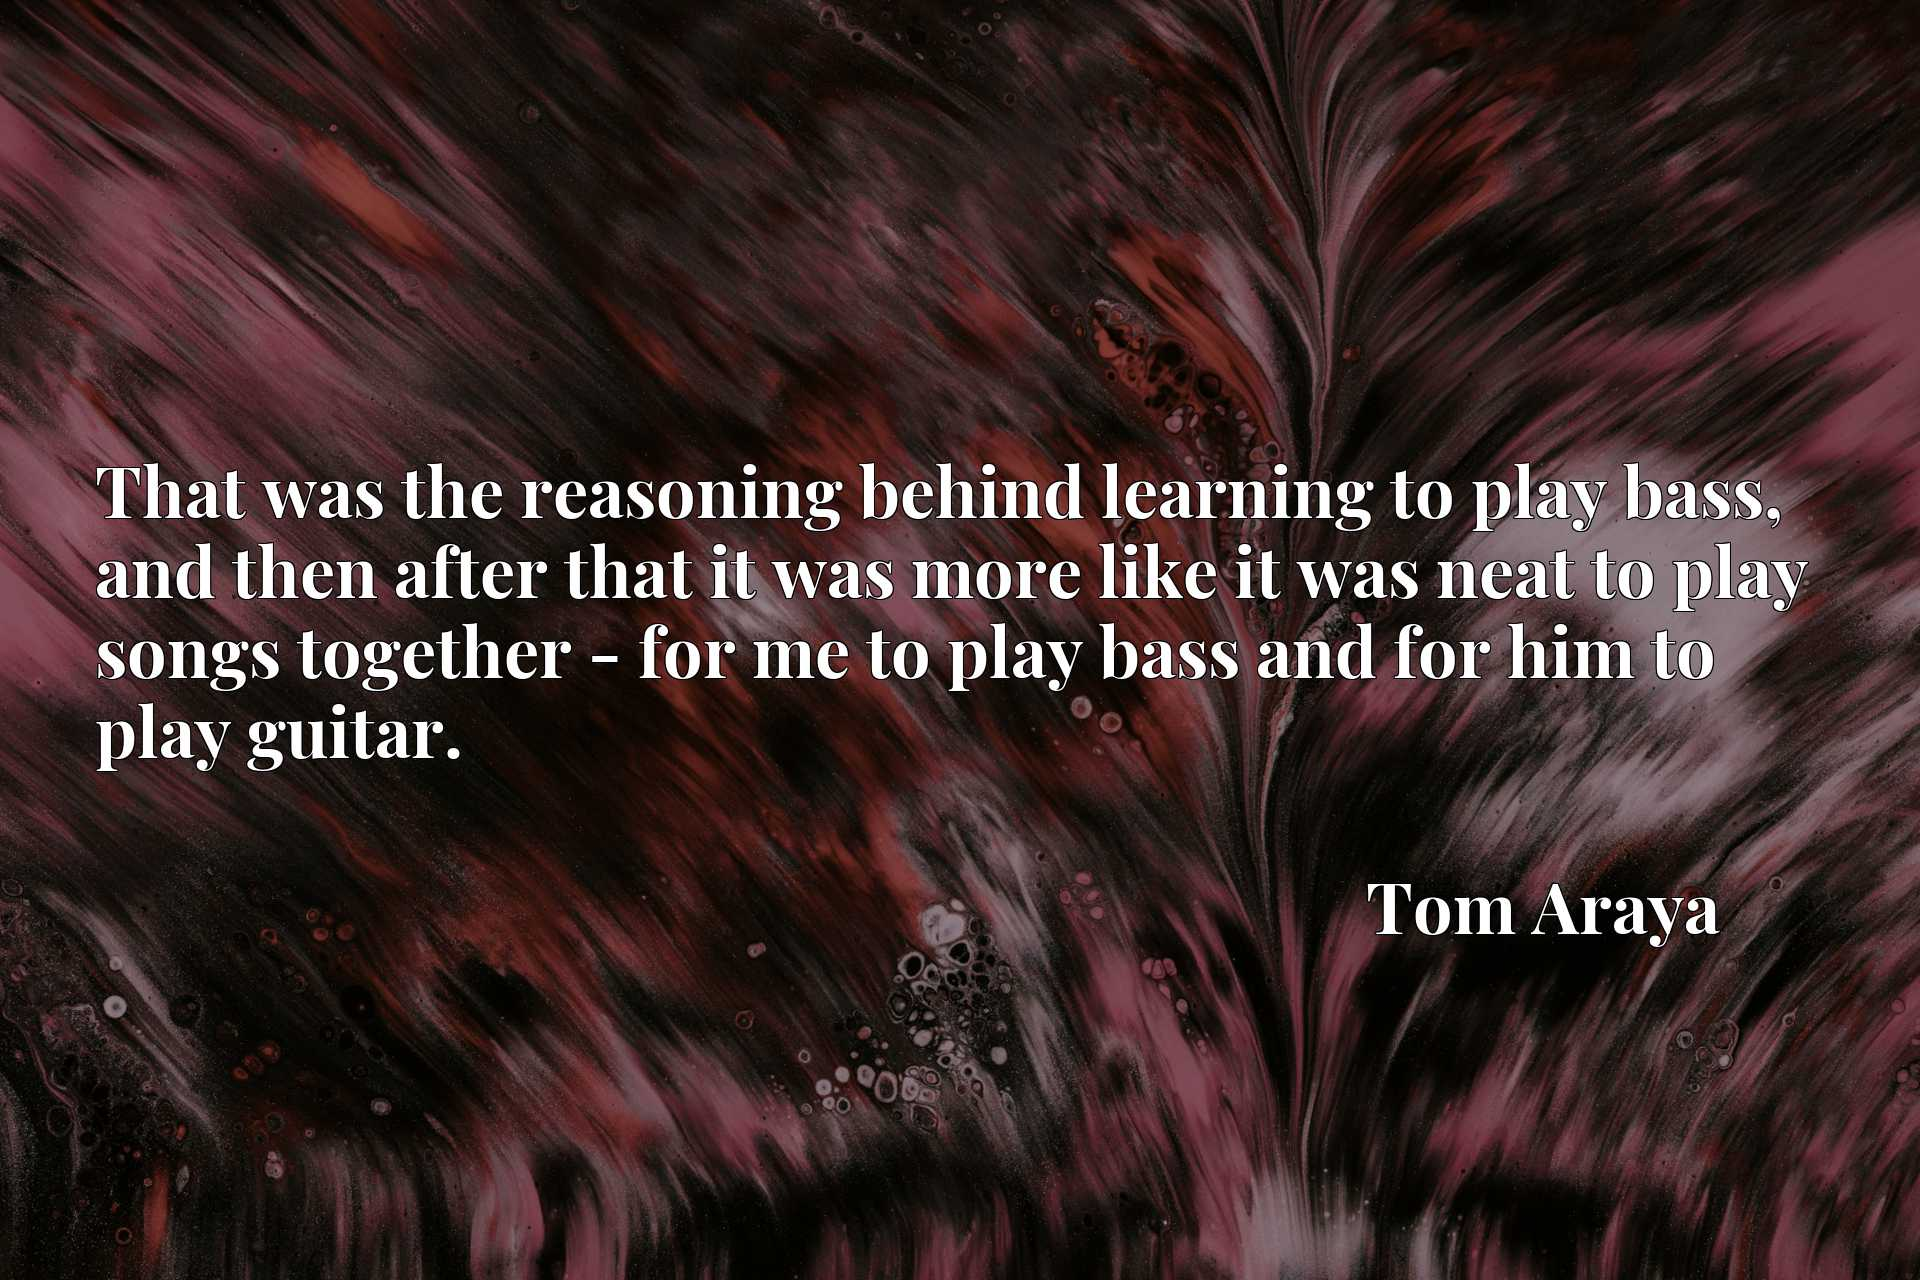 That was the reasoning behind learning to play bass, and then after that it was more like it was neat to play songs together - for me to play bass and for him to play guitar.